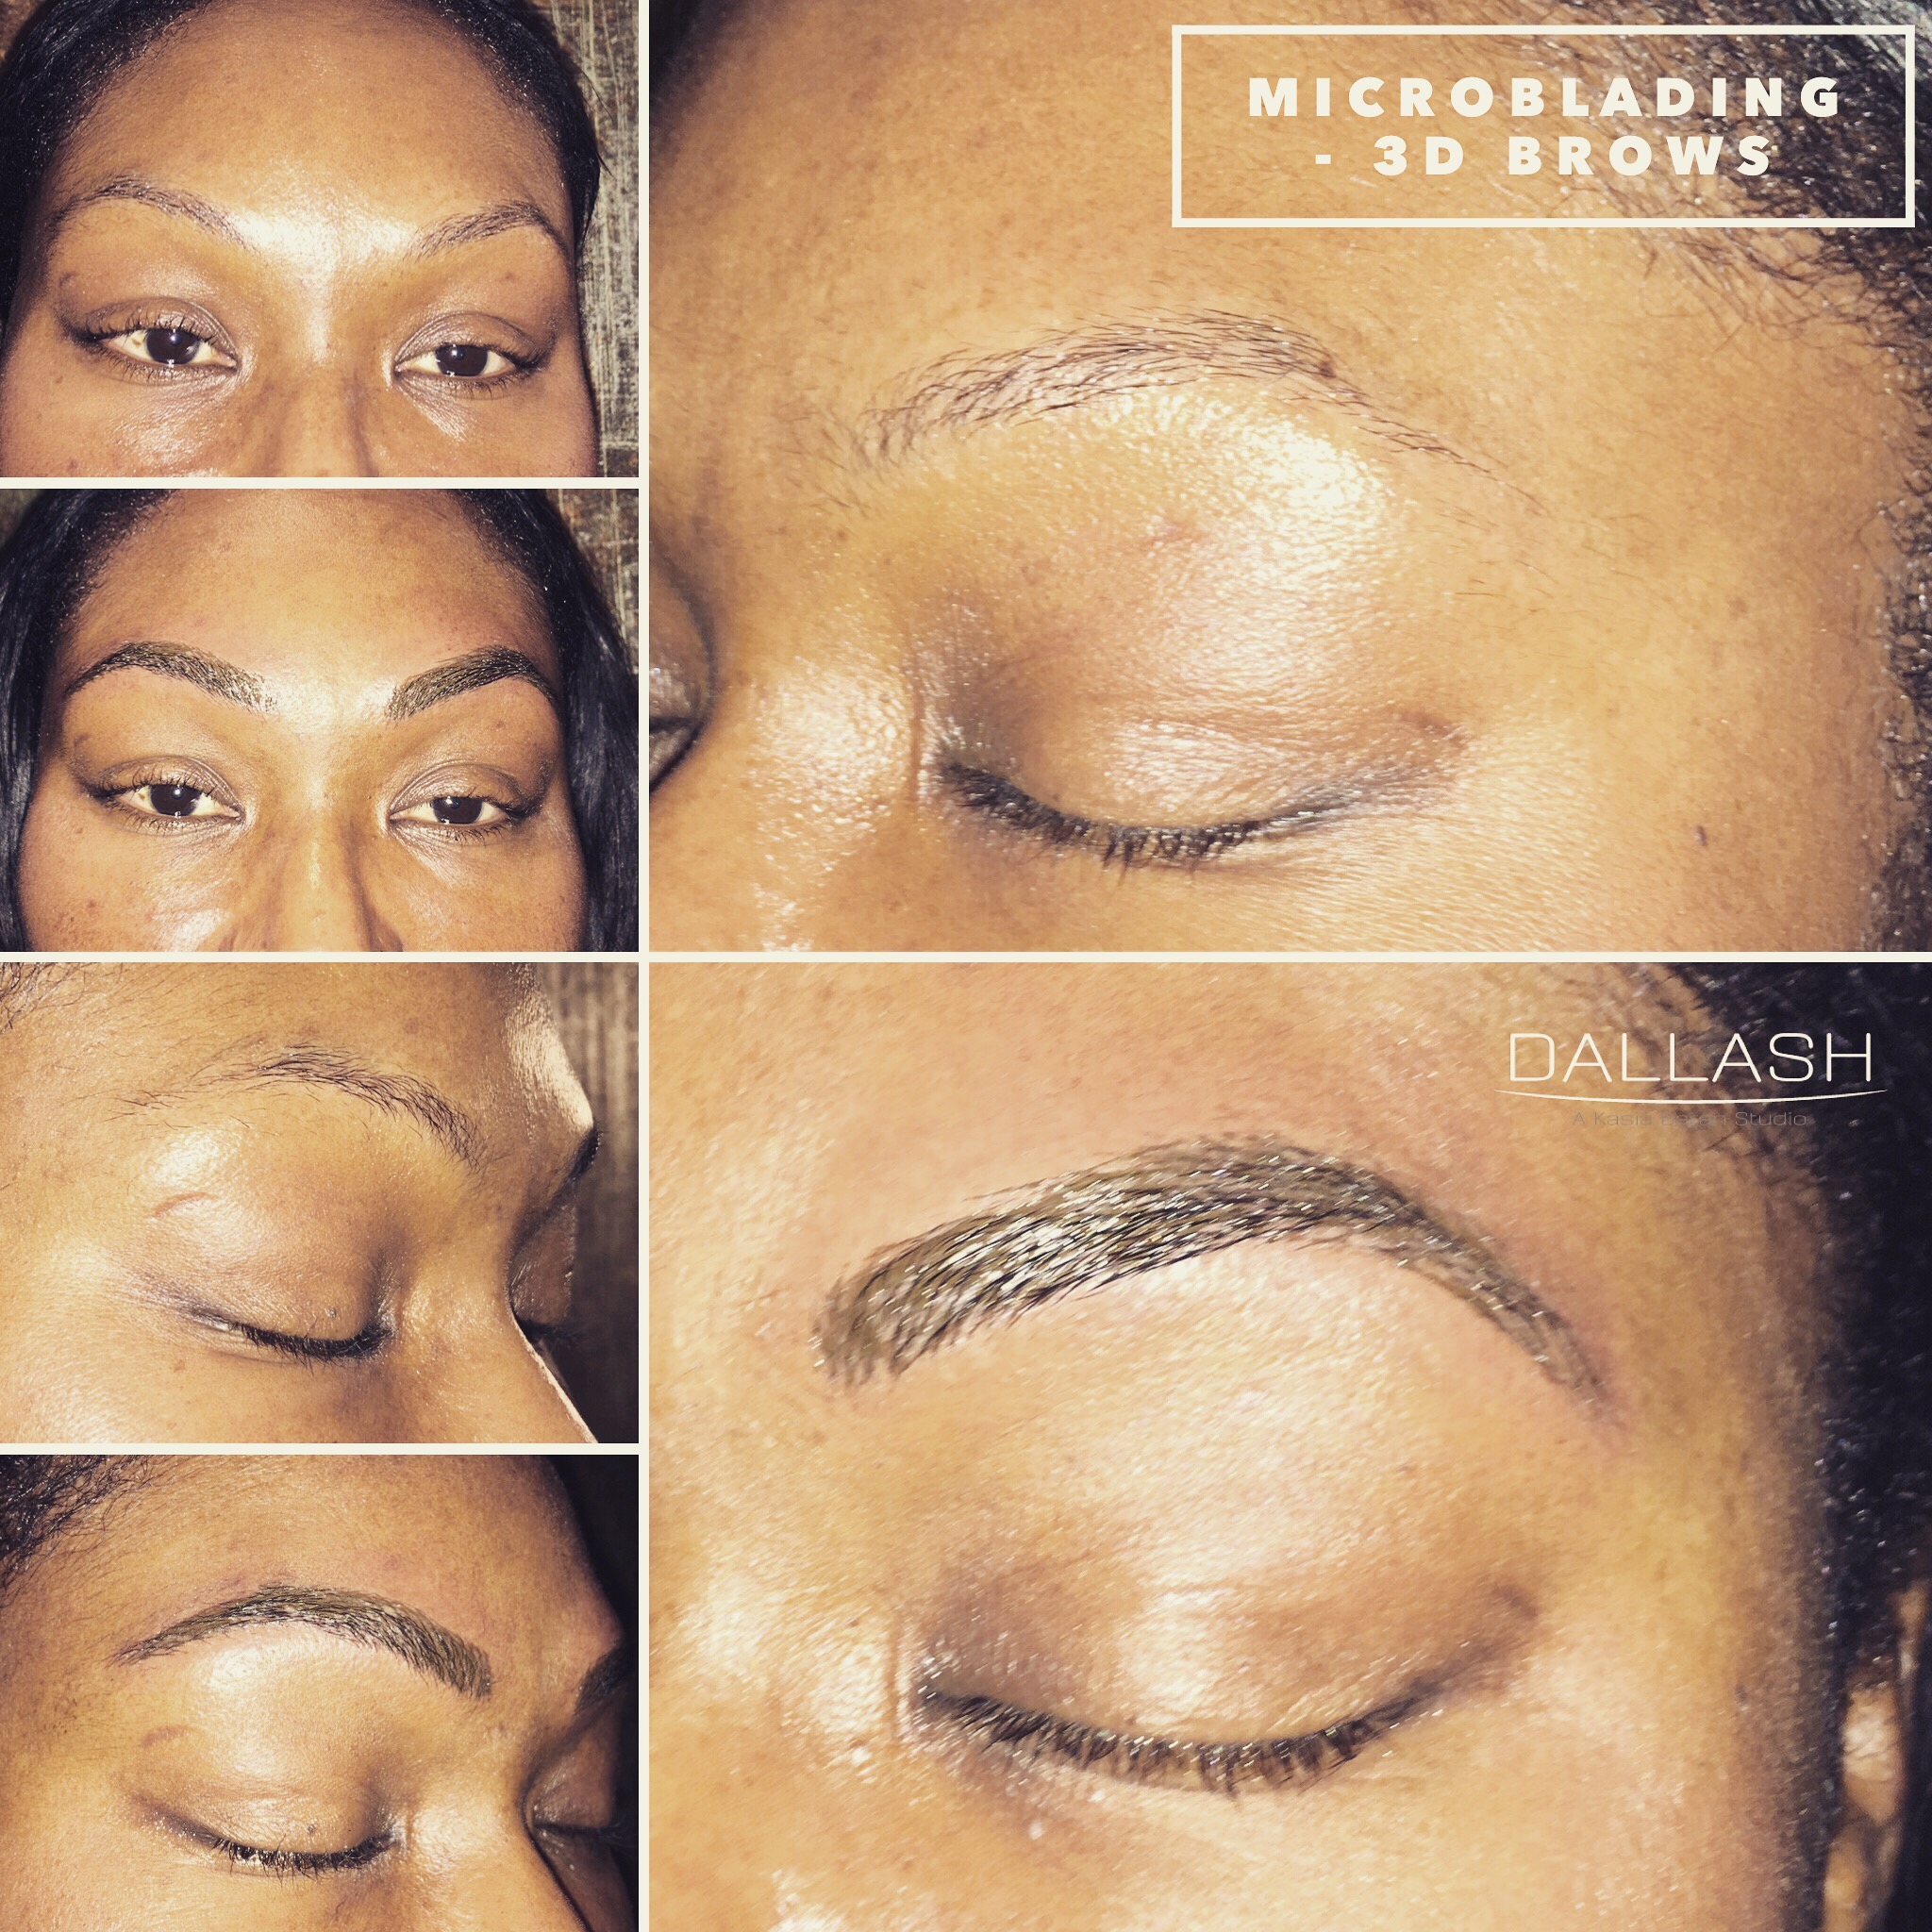 Microblading-Brows-Dallas-Dallash-Semipermanentmakeup